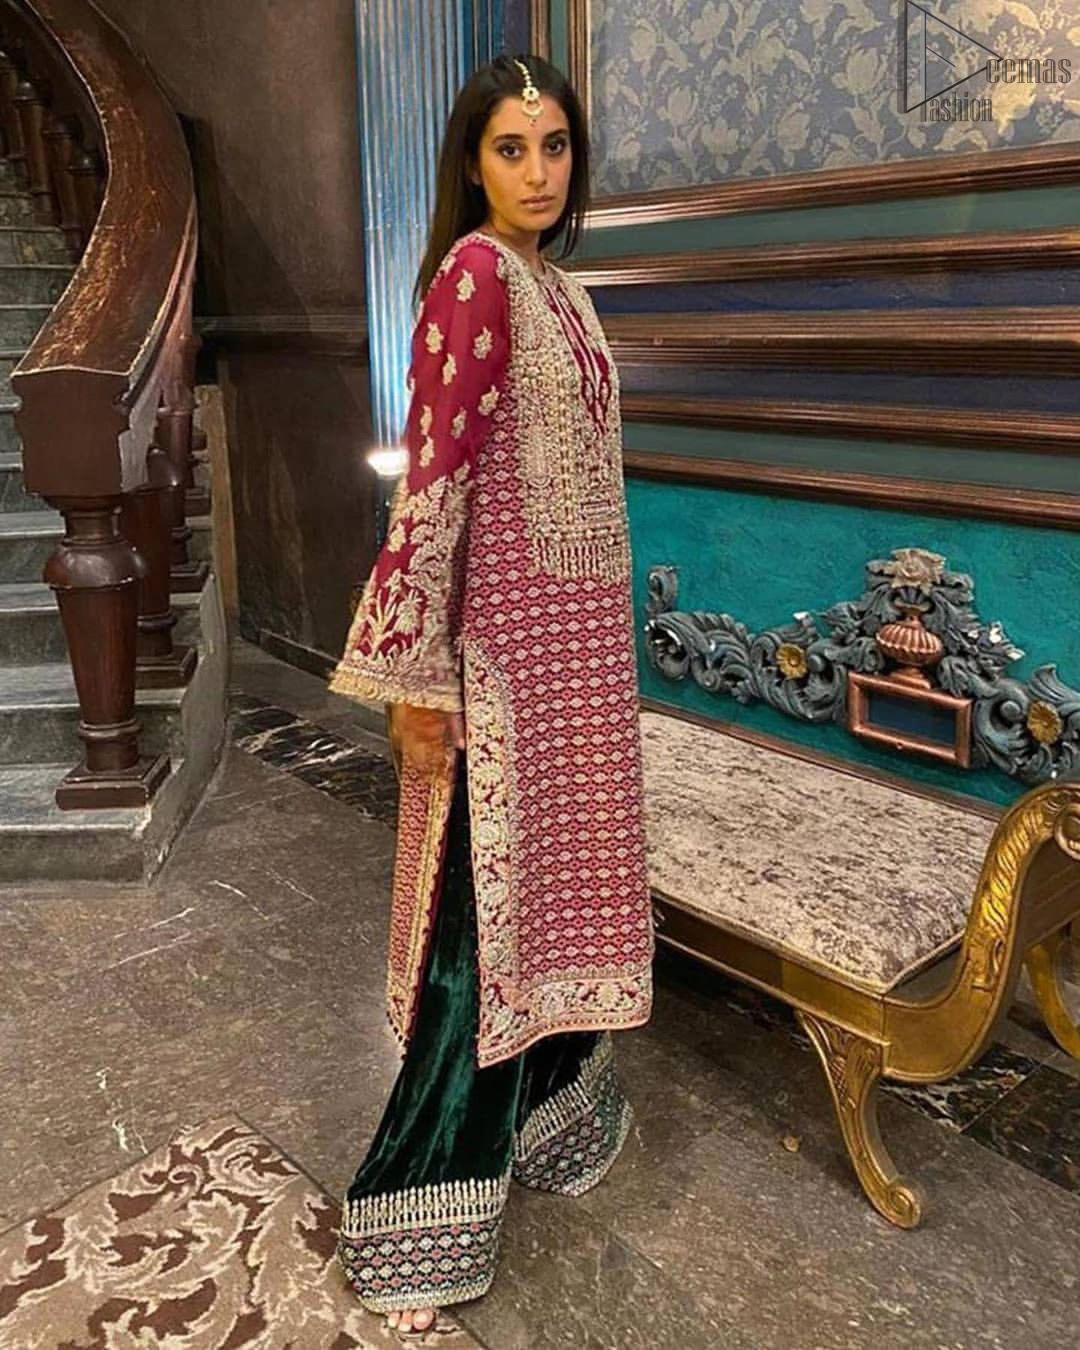 The new season is all about making a statement. An sensational affair so timeless and magnificent, beautifully crafted in hues of golden. Embellishd bodice with zardozi work and bell sleeves adorned with tassels finishing make the outfit more beautiful. Balance the look with bottle green palazzo pants highlighted with embroidered borders at the bottom and red organza dupatta with sequins spray all over. Craftmanship and skills you've never witnessed before.